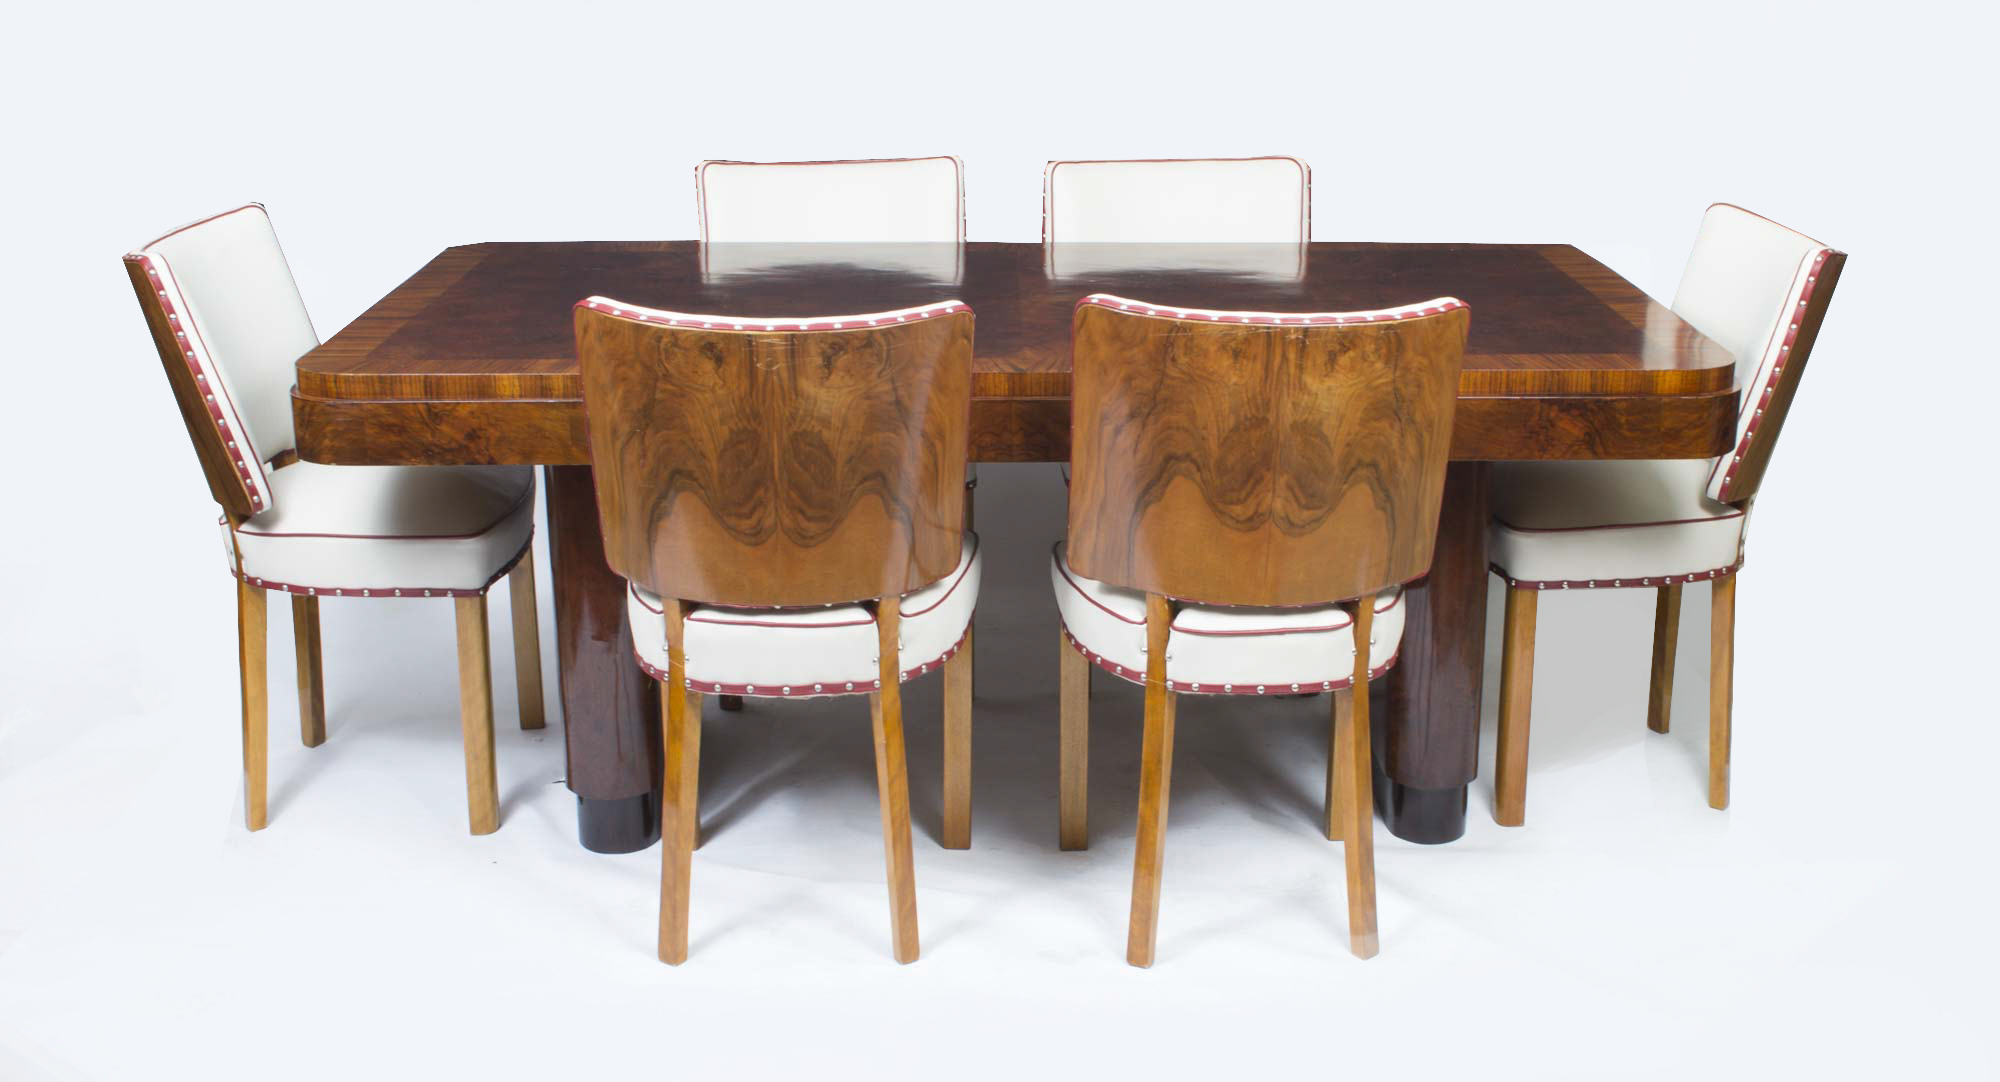 antique art deco walnut rosewood dining table 6 chairs ref no 06769a. Black Bedroom Furniture Sets. Home Design Ideas